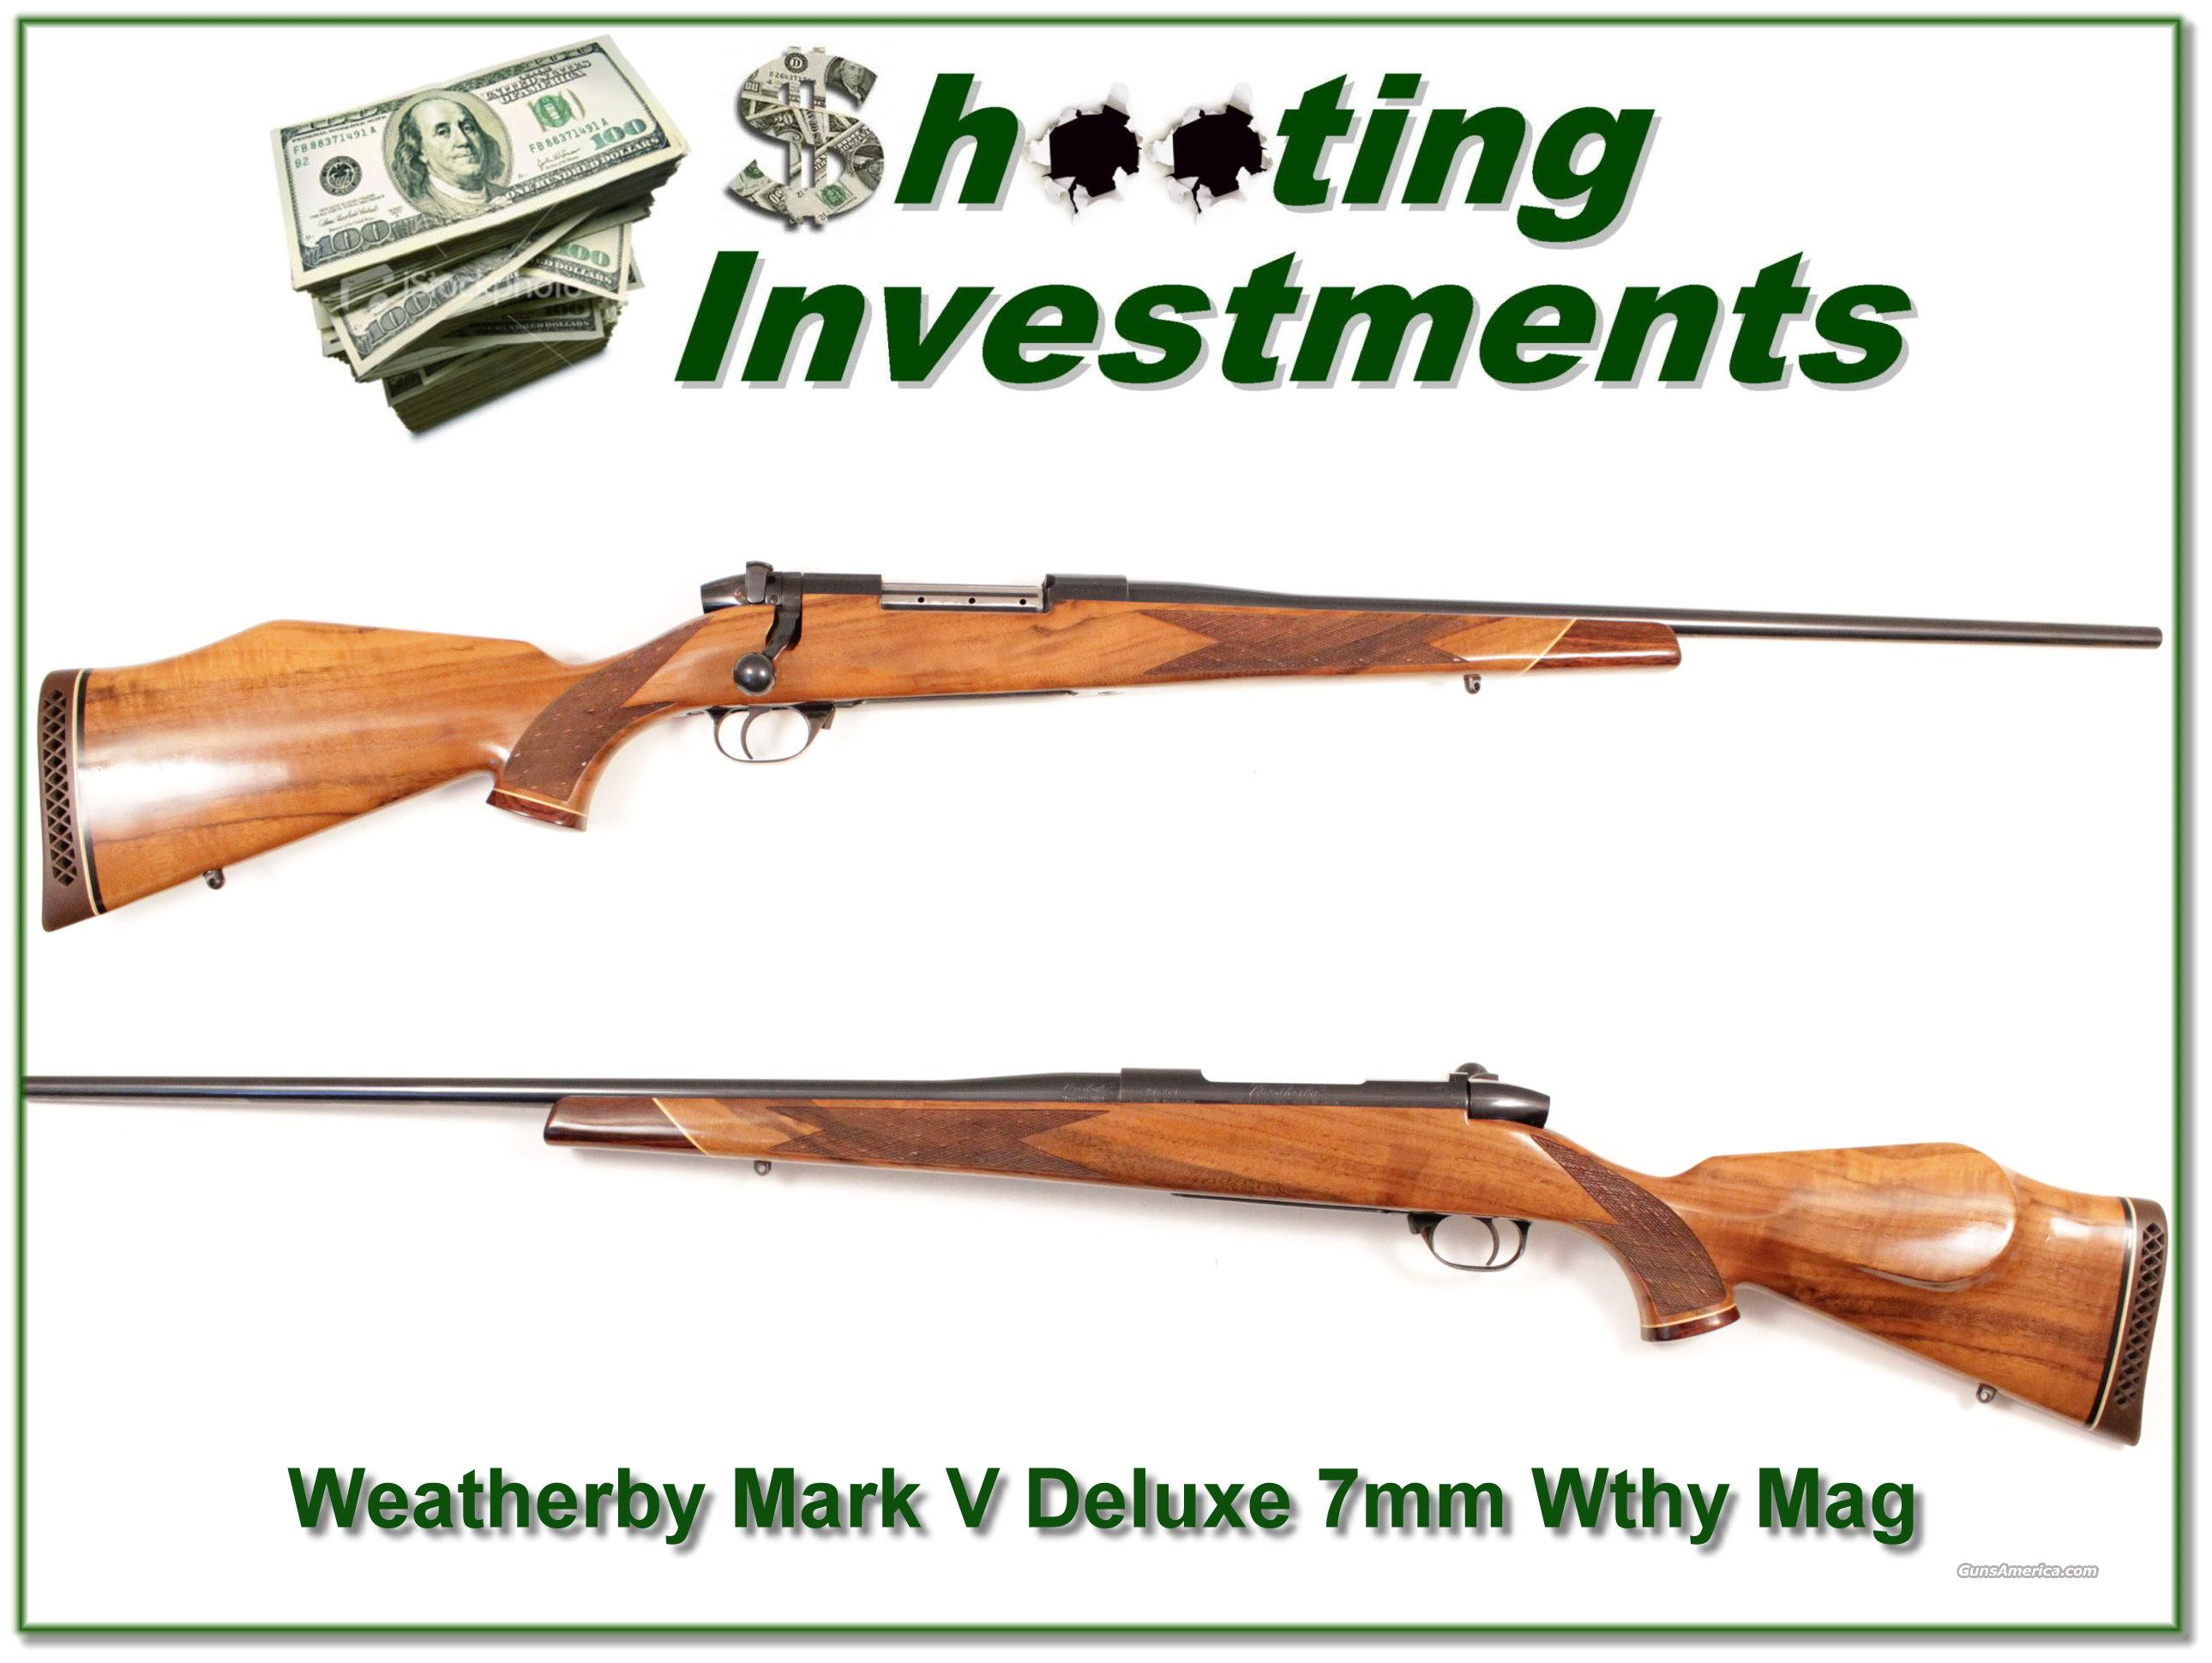 Weatherby Mark V Deluxe 7mm Weatherby Magnum  Guns > Rifles > Weatherby Rifles > Sporting